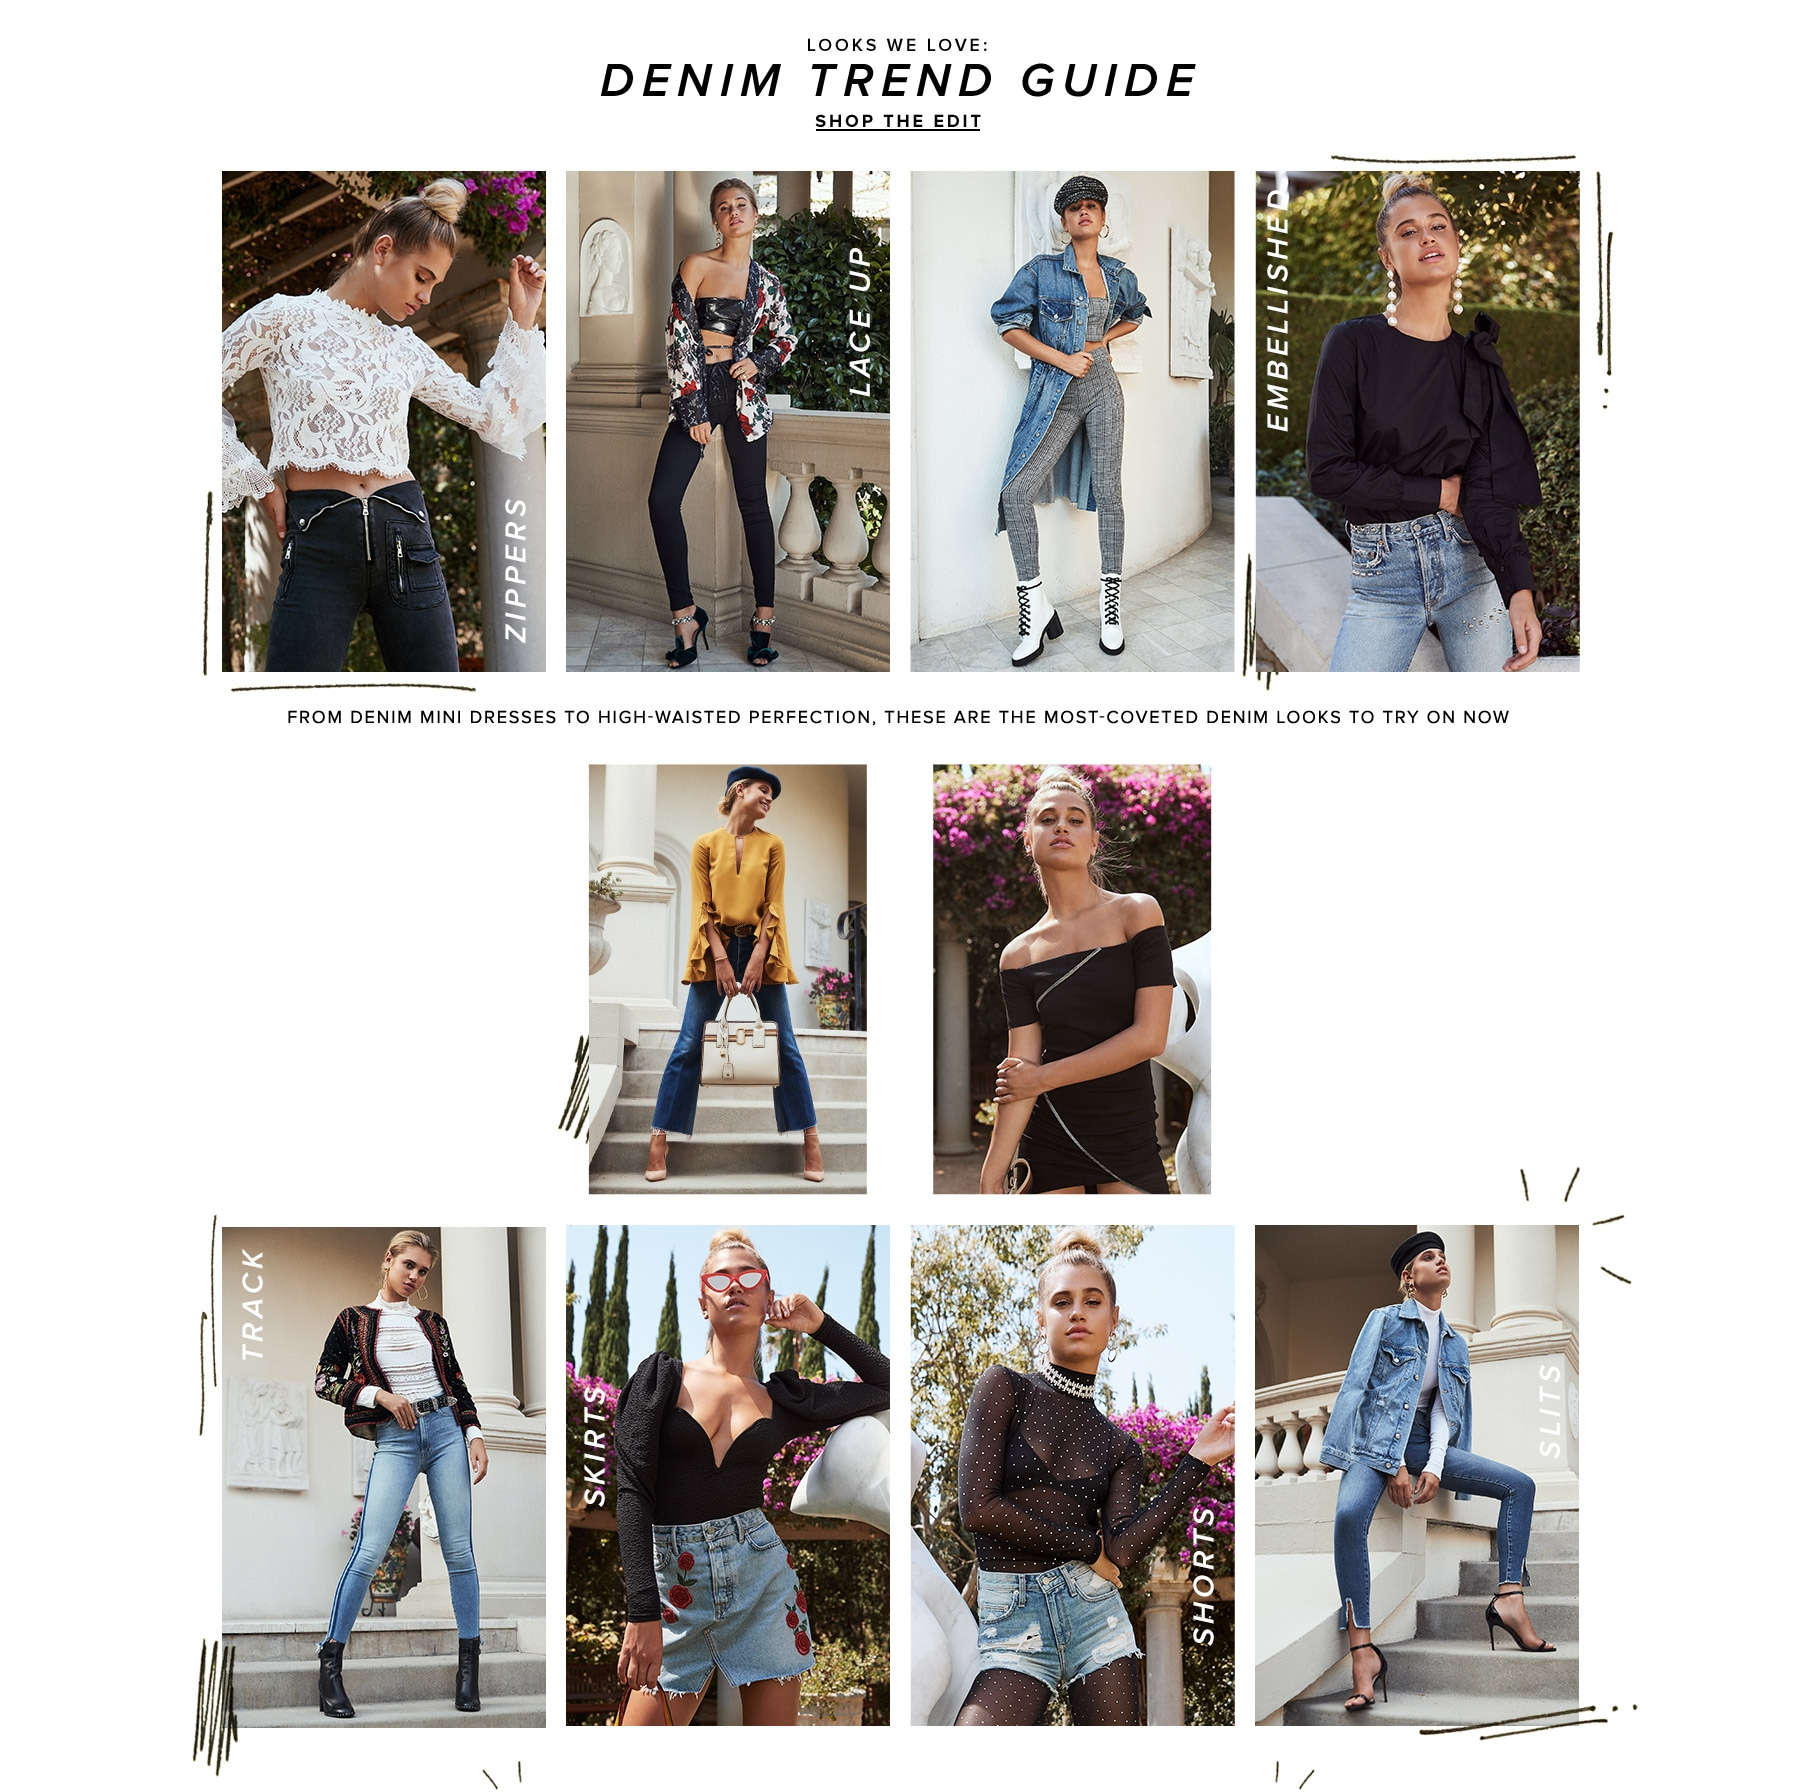 Looks We Love: Denim Trend Guide. From denim mini dresses to high-waisted perfection, these are the most-coveted denim looks to try on now. Shop the Edit